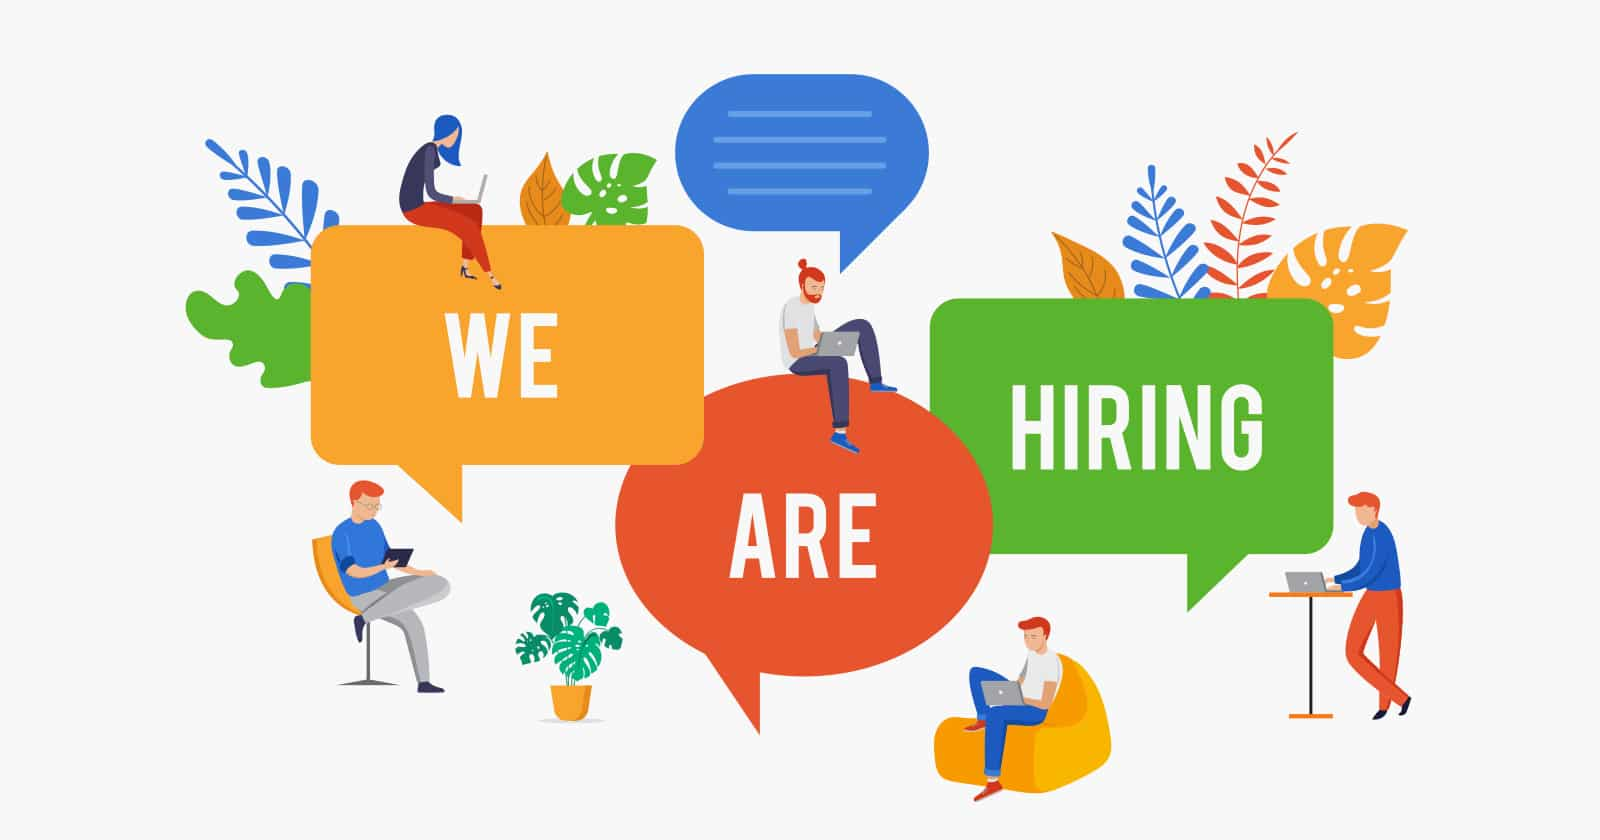 Search Engine Journal Is Hiring a Full-Time Content Marketing Manager via @sejournal, @hethr_campbell